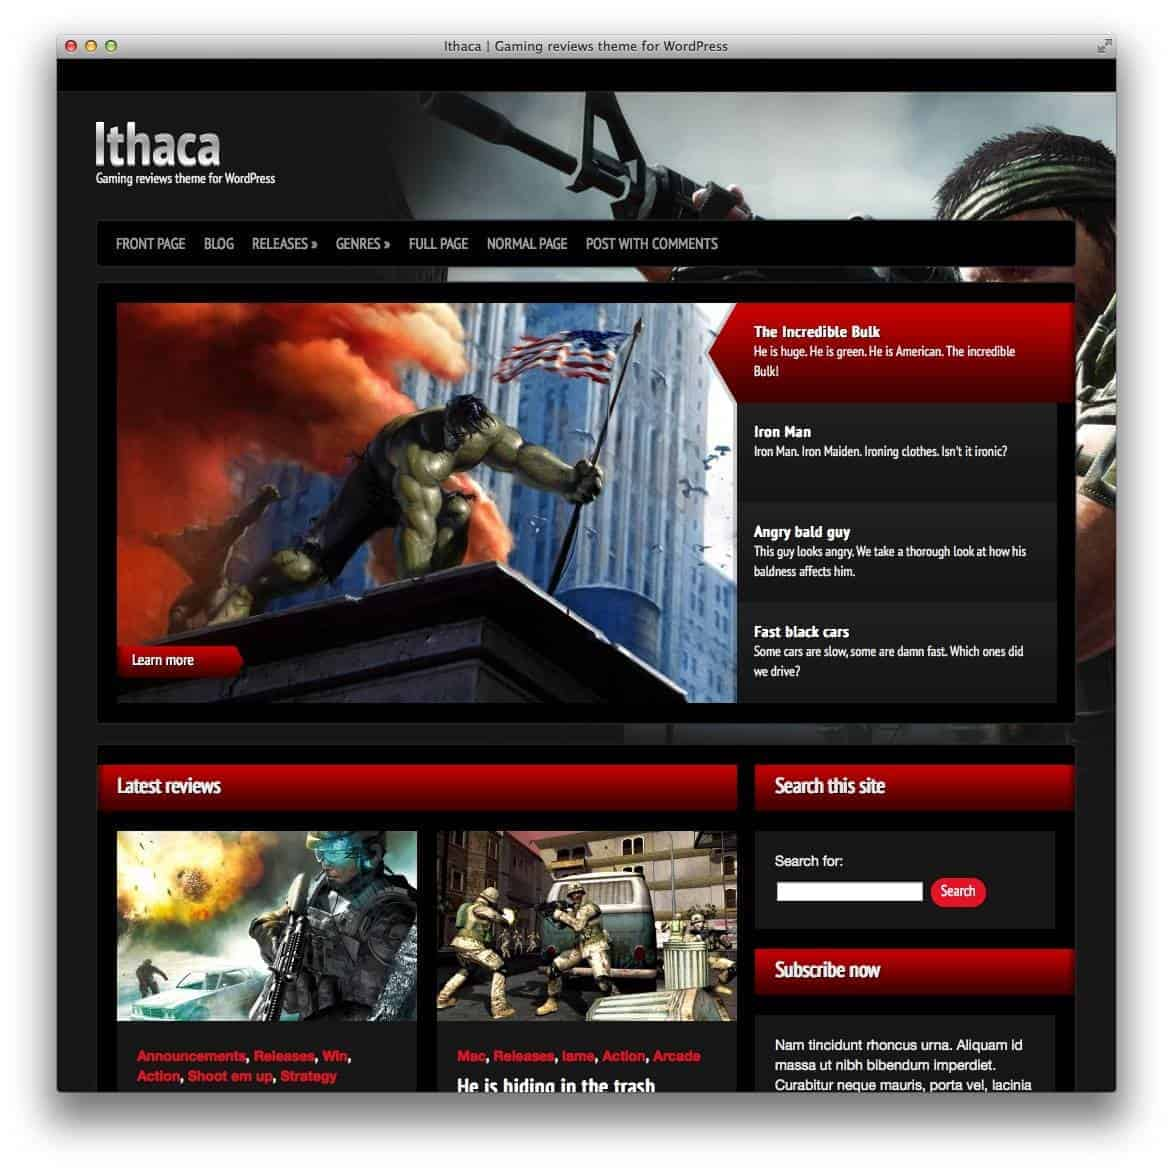 ithaca-wp-themes